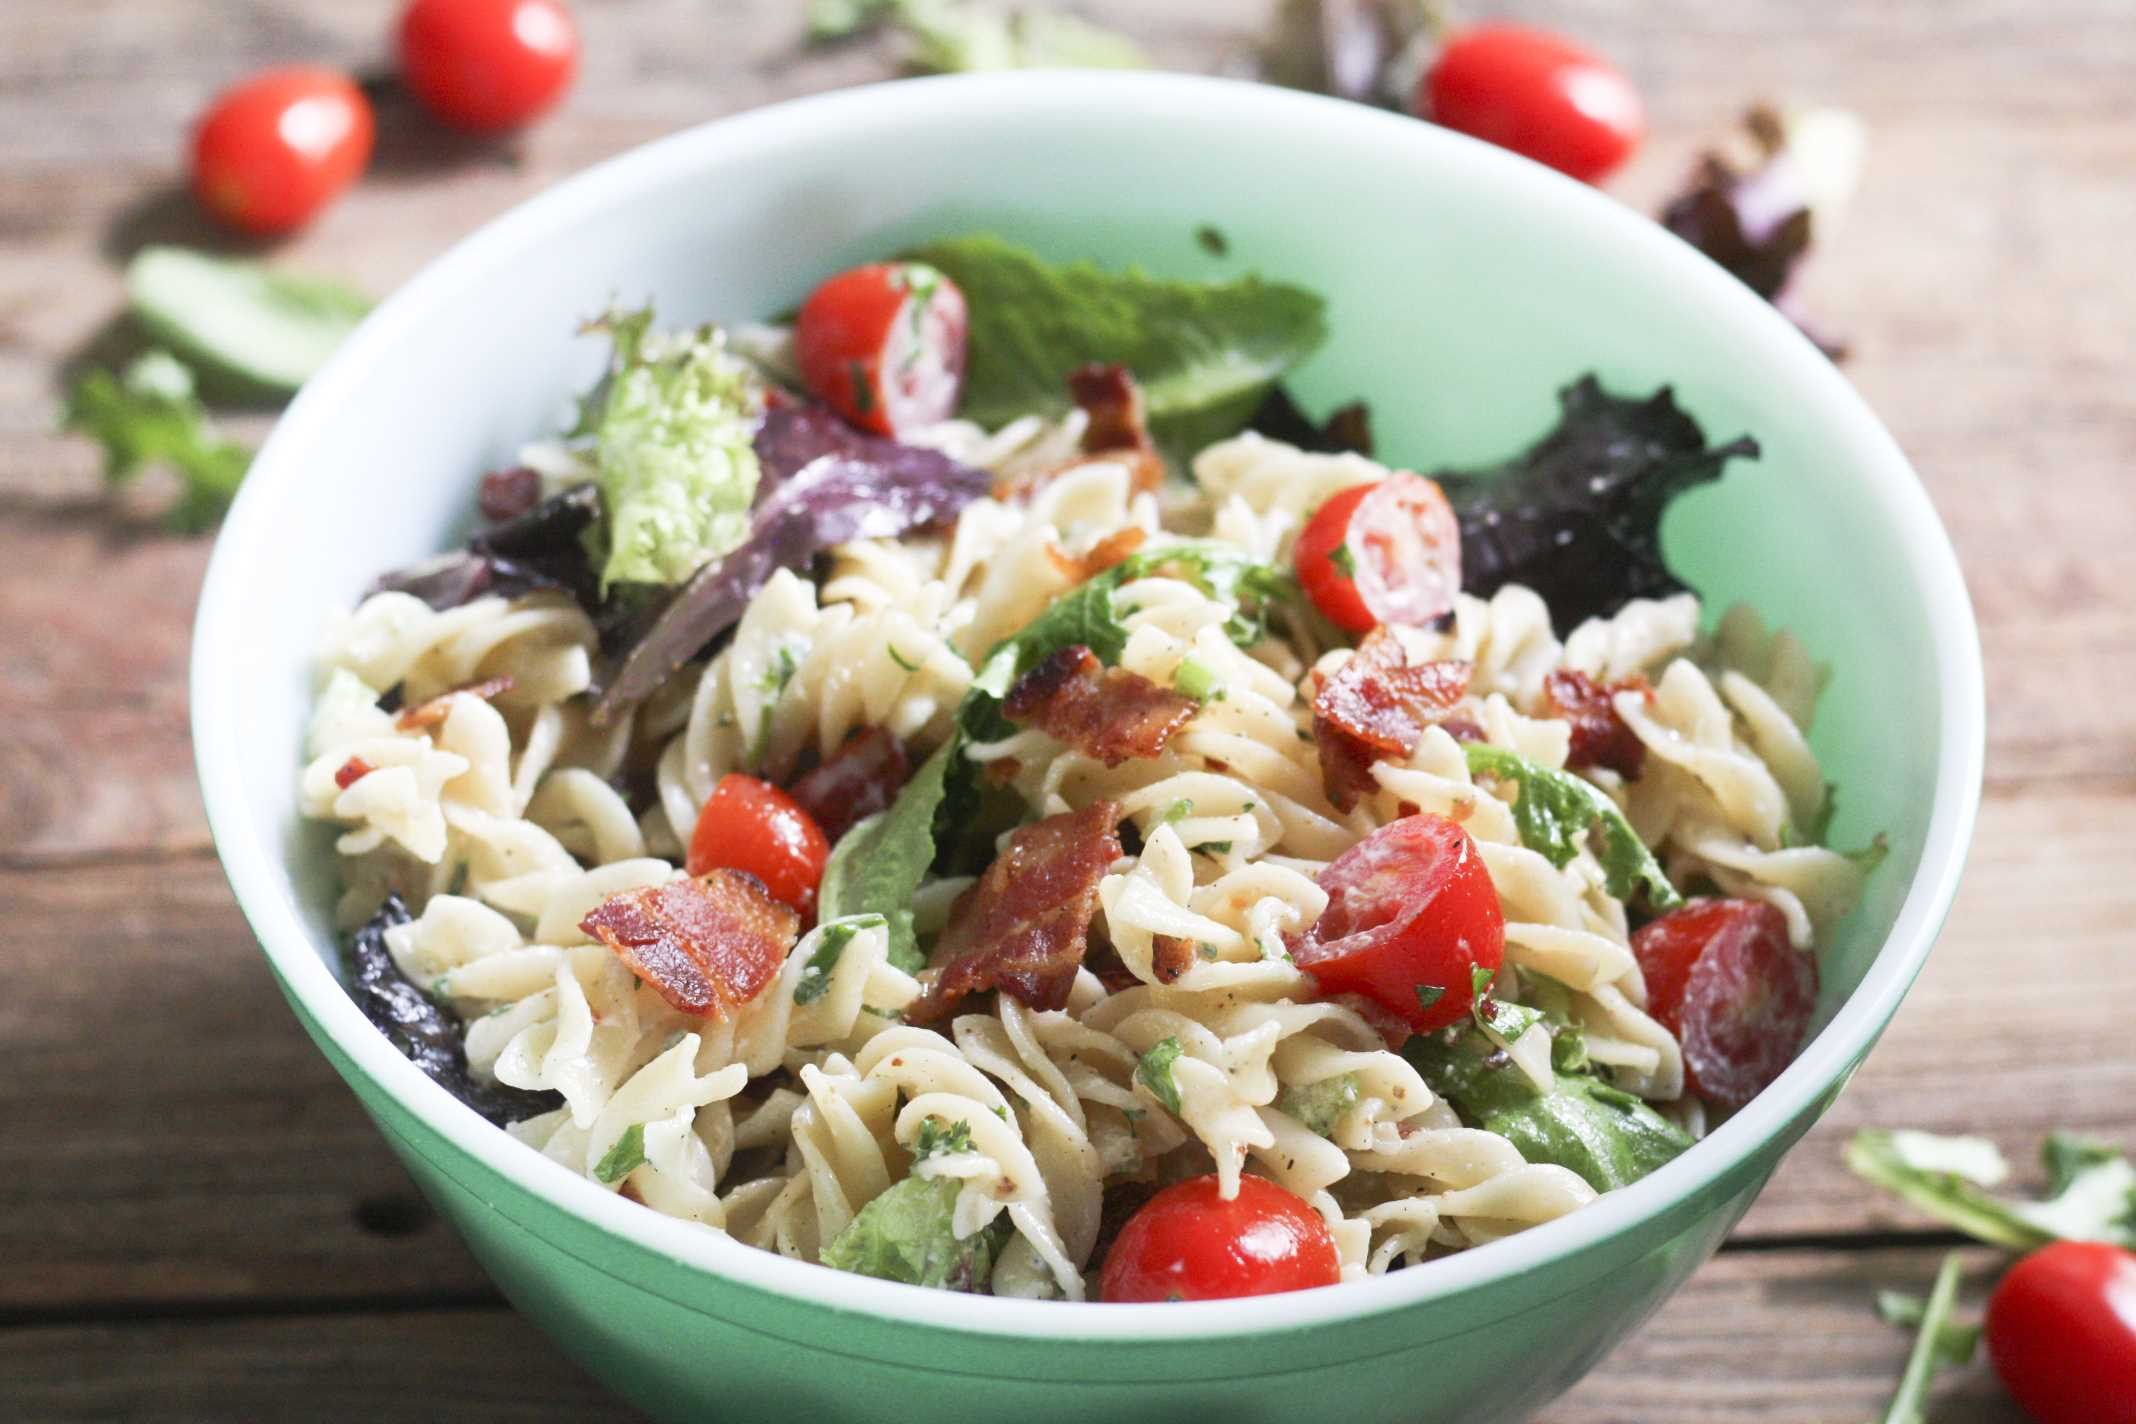 BLT Pasta Salad in green bowl with chunks of bacon on top